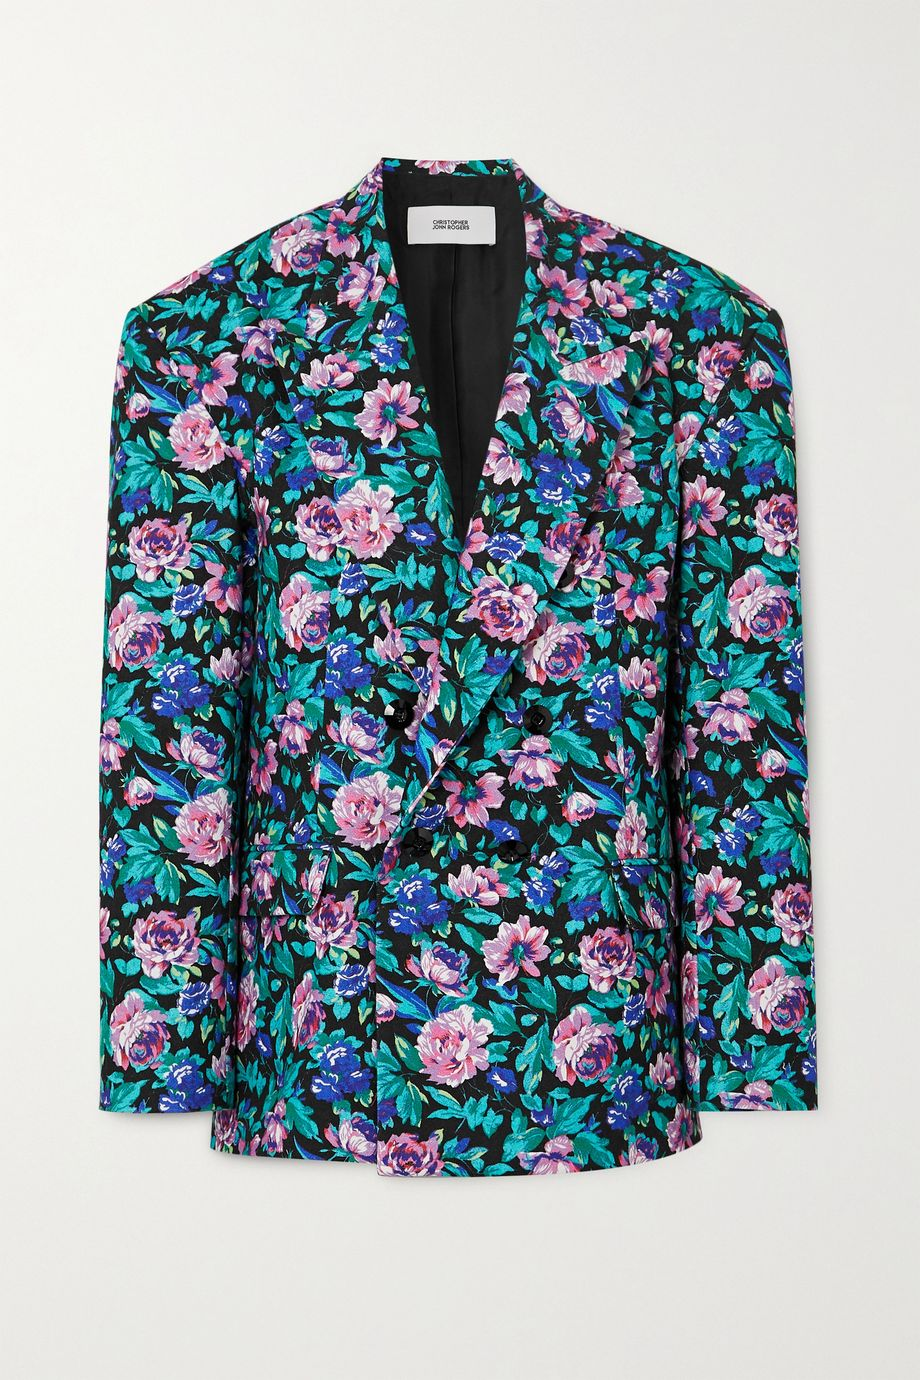 Christopher John Rogers Double-breasted floral-print cotton jacket